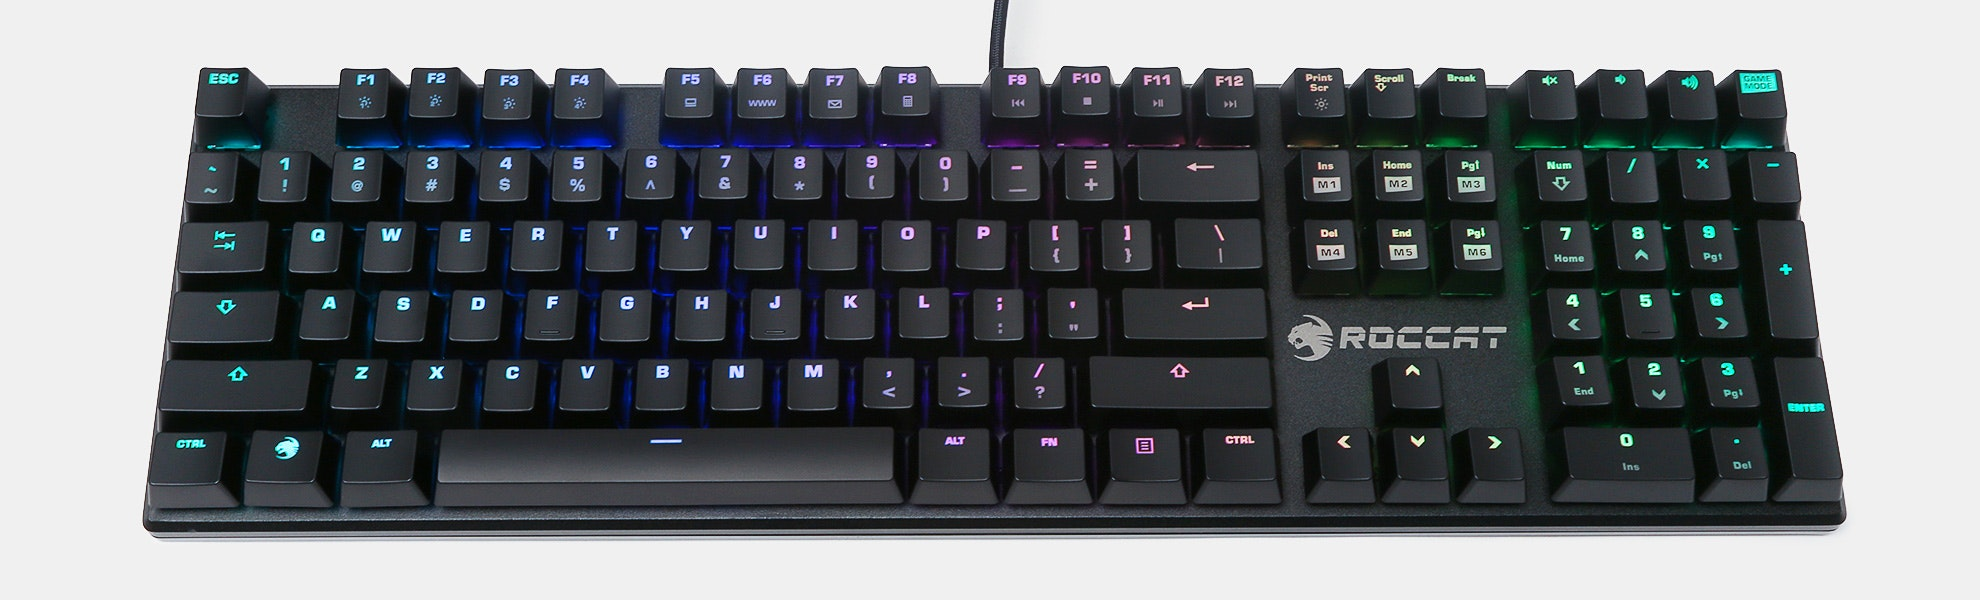 Roccat Suora FX RGB Mechanical Gaming Keyboard